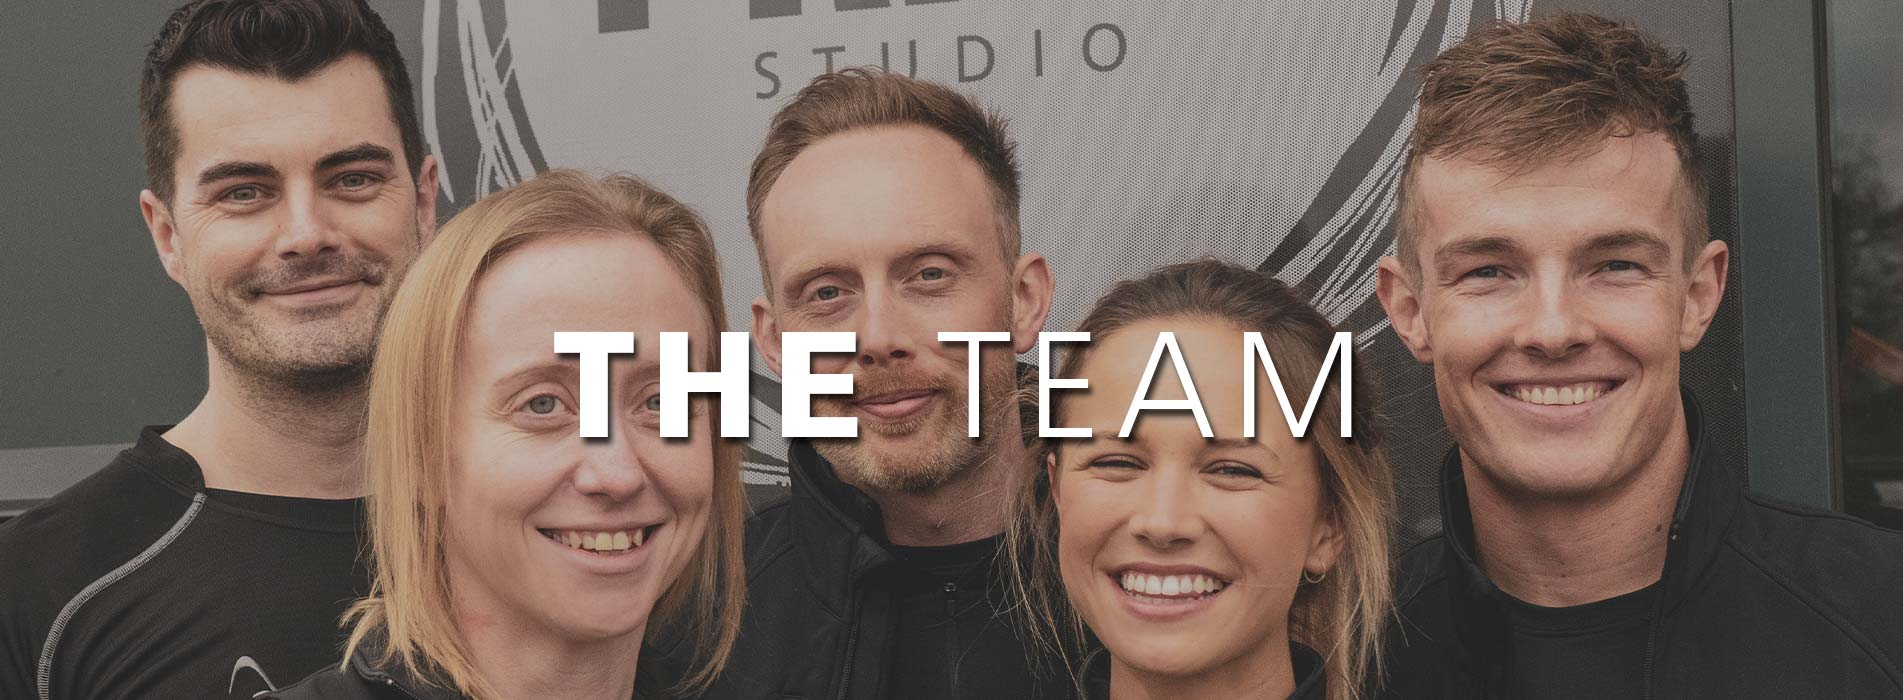 The-Team-MOBILE3